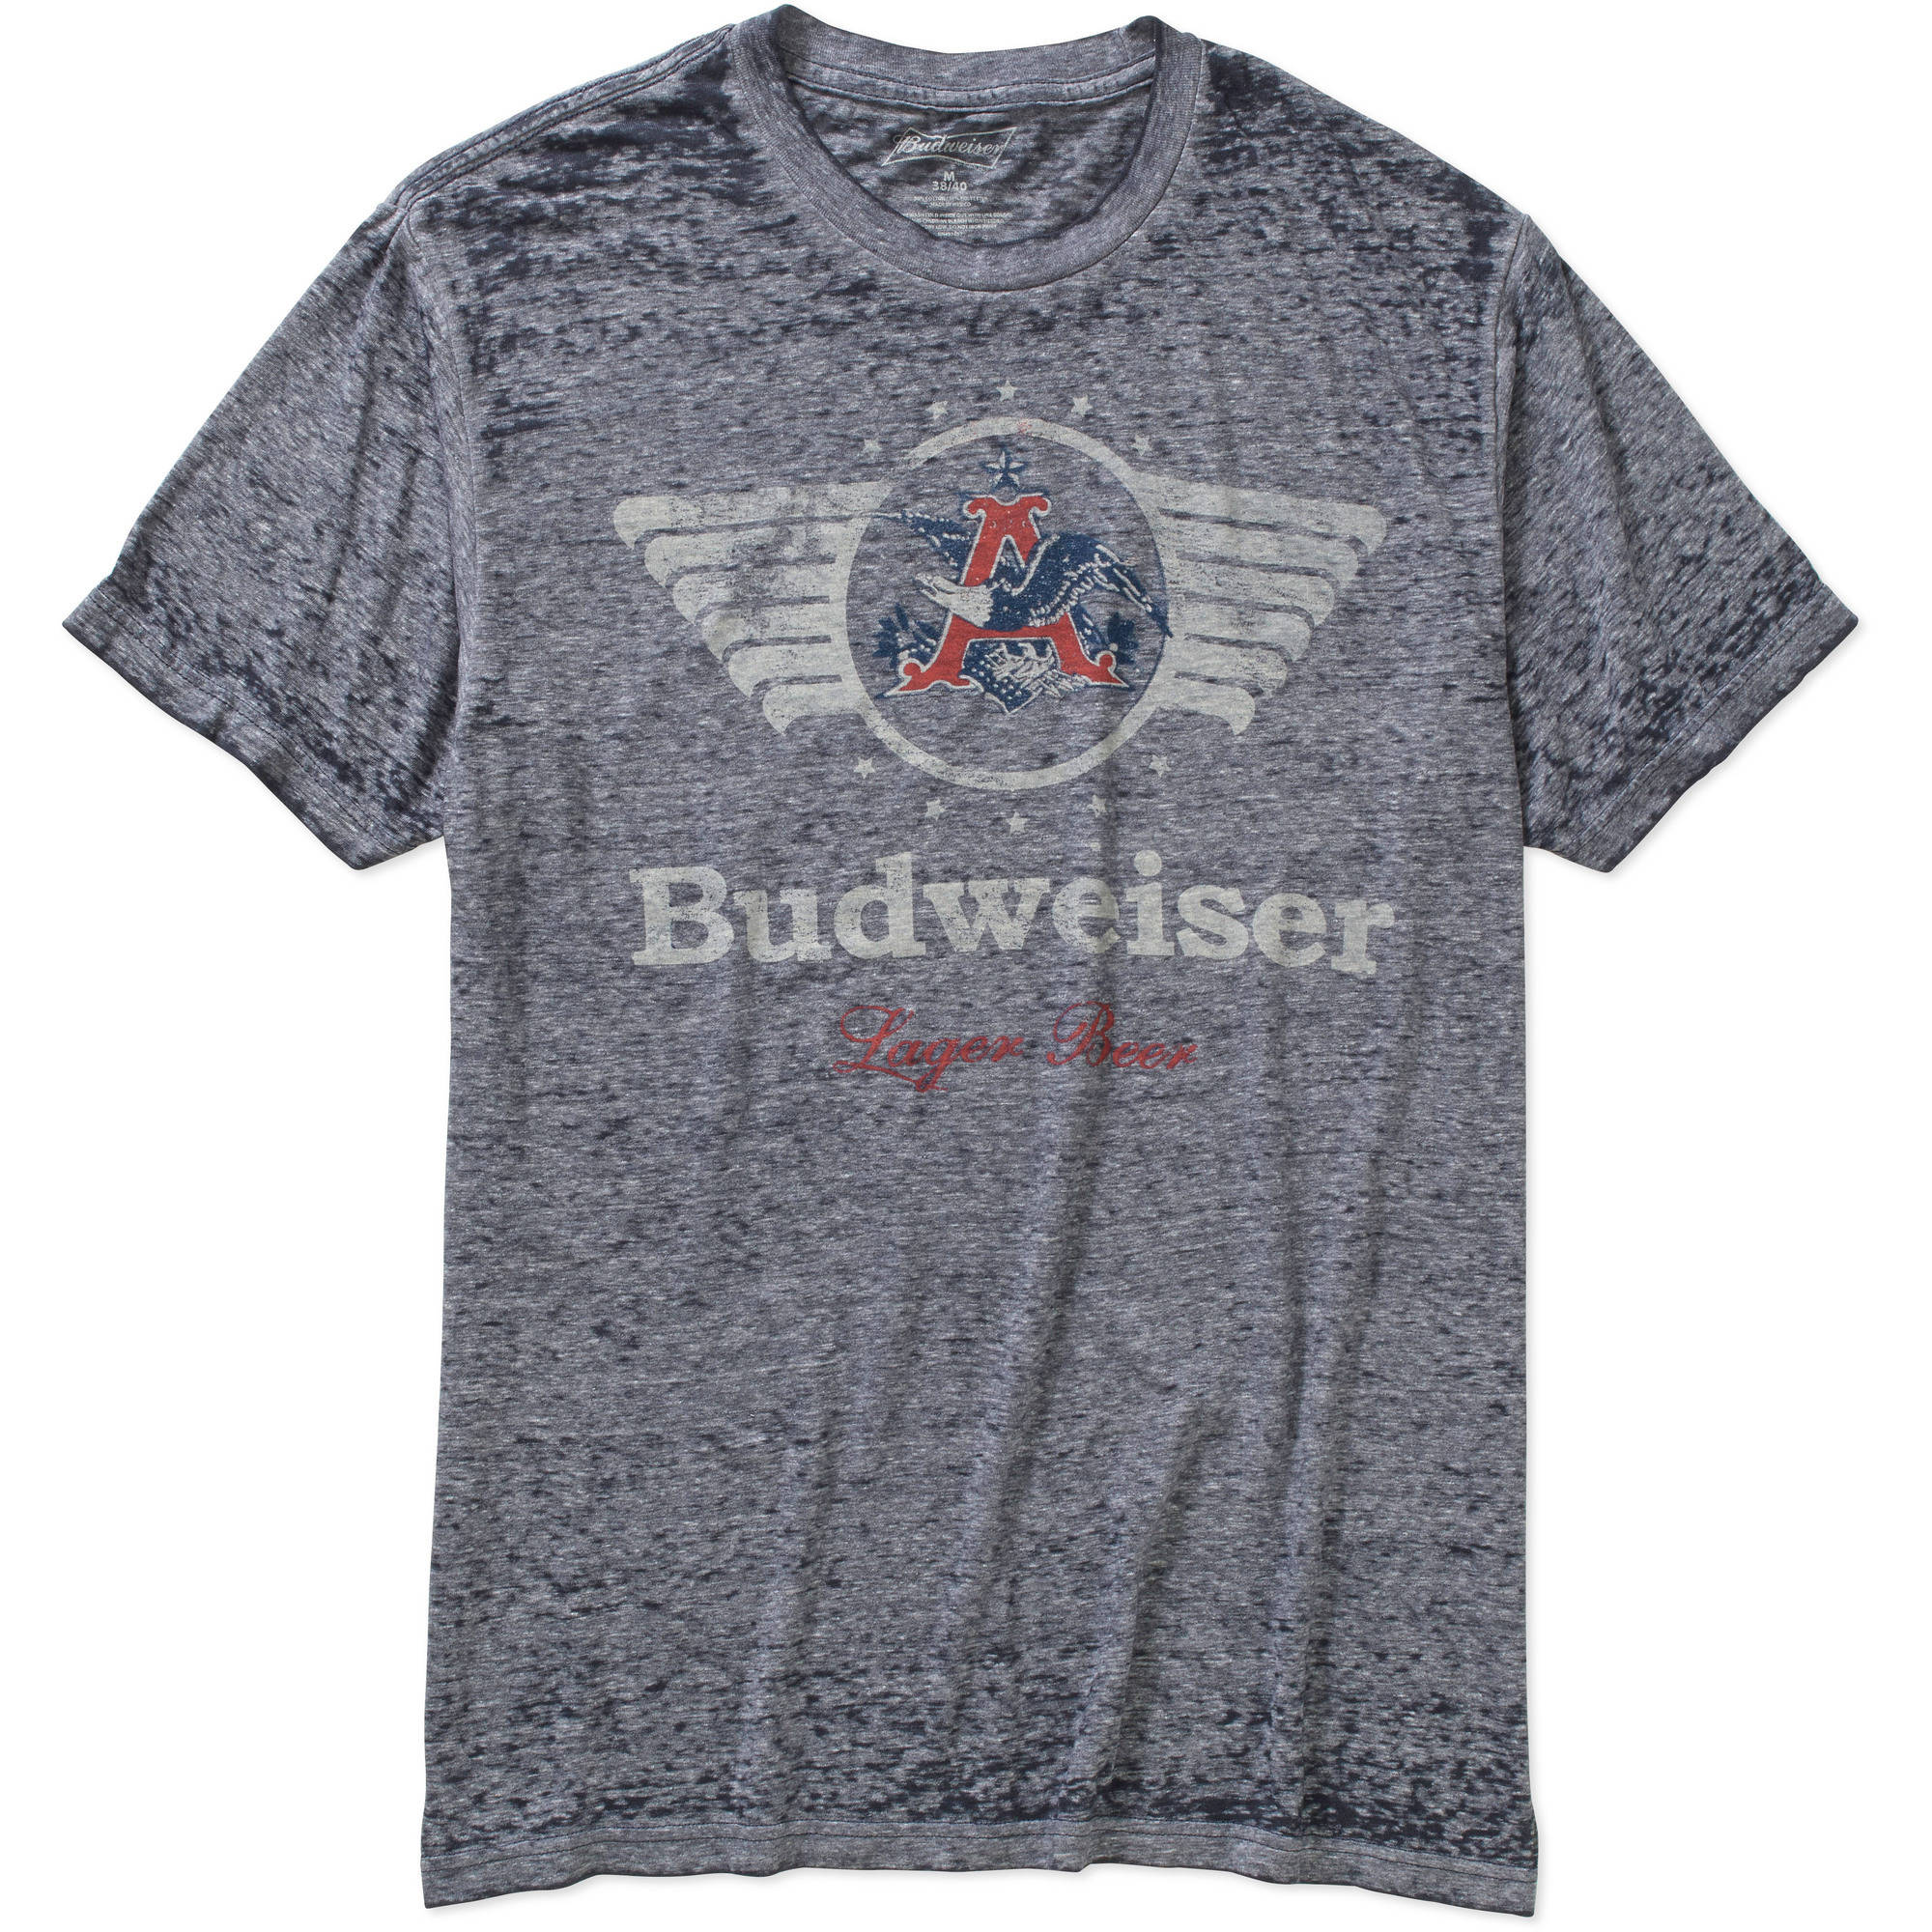 Budweiser Wings Vintage Wash Heather Men's Graphic Tee